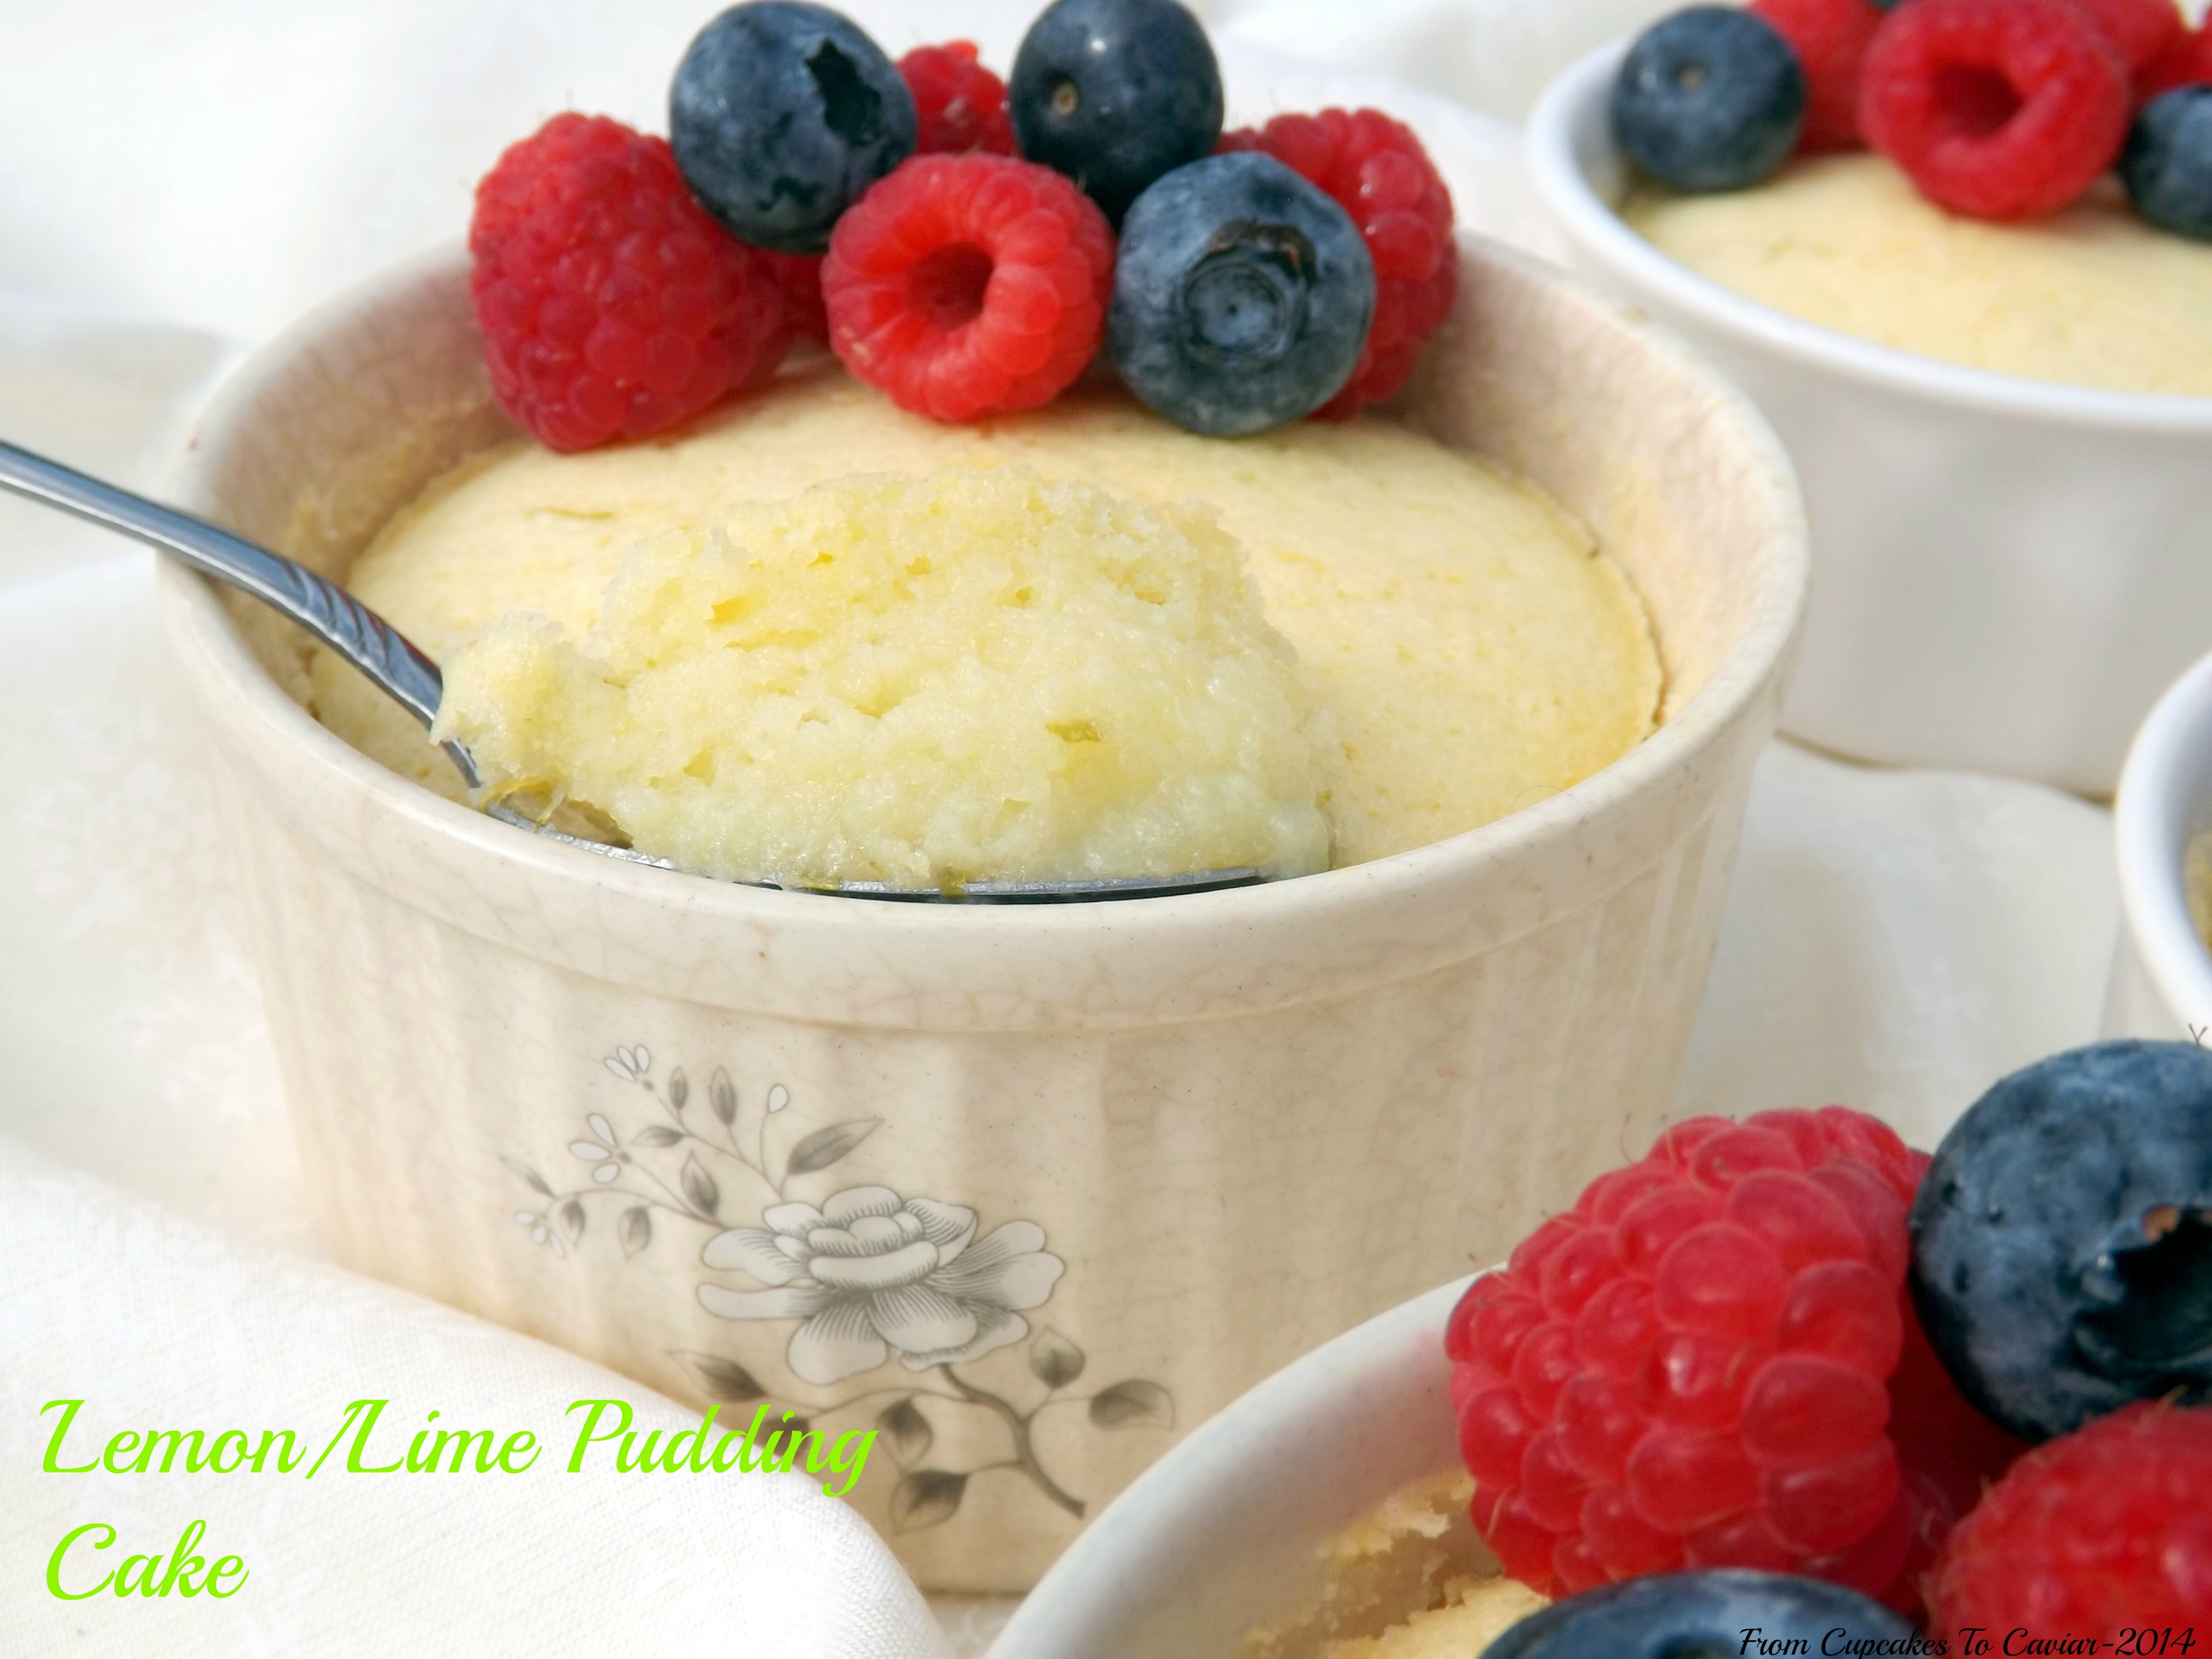 Lemon/Lime Pudding Cake